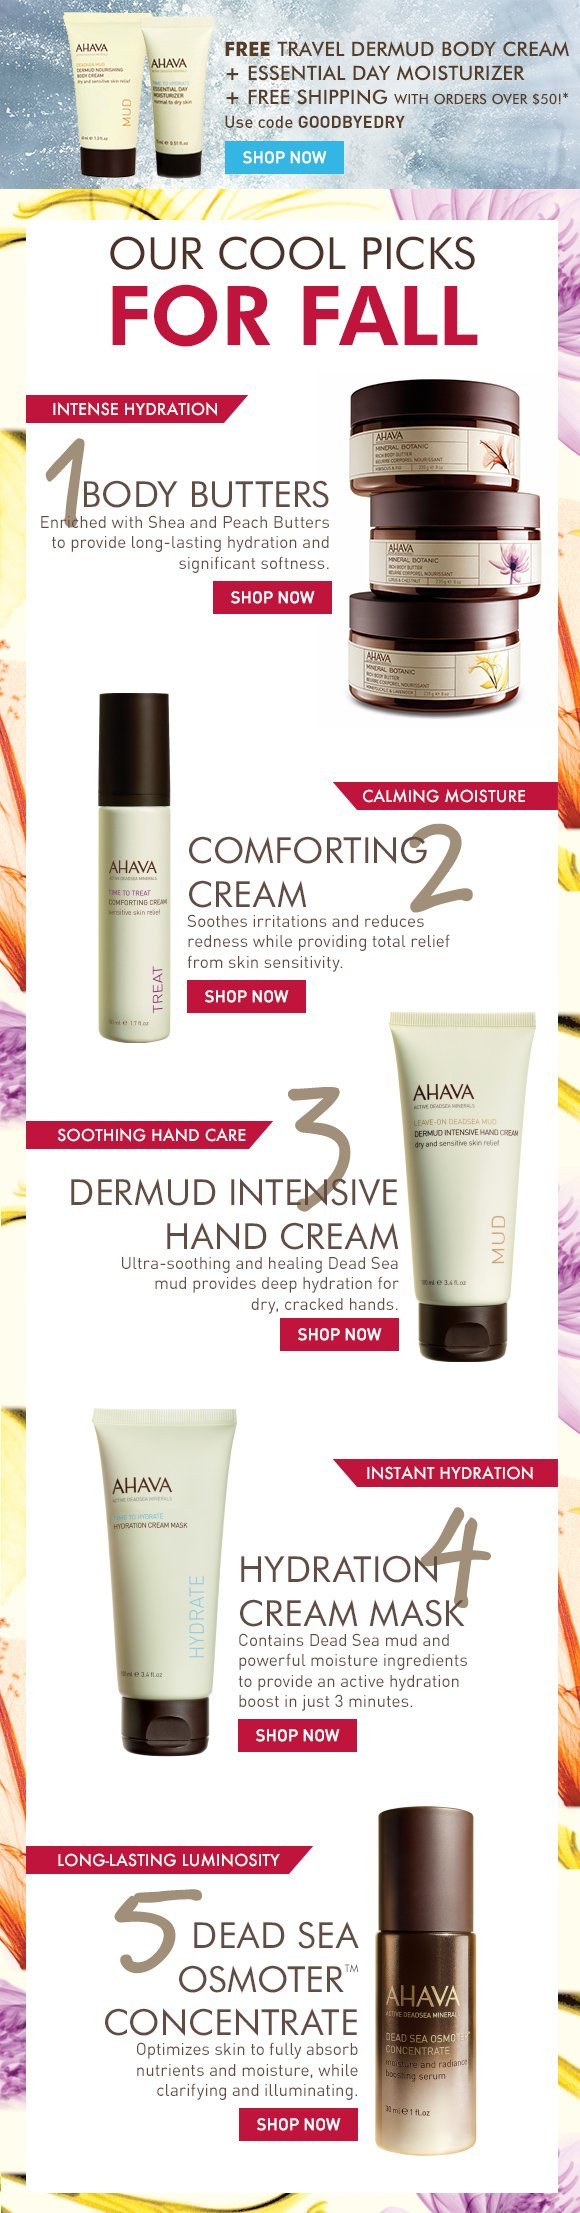 Free Travel Sized Dermud Body Cream + Essential Day Moisturizer + Free Shipping with orders over $50!* Use code GOODBYEDRY ends Tuesday! Shop Now Our cool picks for Fall 1. Body Butters intense hydration Enriched with Shea and Peach Butters to provide long-lasting hydration and significant softness. 2. Comforting Cream calming moisture Calms dry, sensitive skin while reducing redness  Soothes irritations and reduces redness while providing total relief from skin sensitivity. 3. Dermud Intensive Hand Cream soothing hand care Ultra-soothing and healing Dead Sea mud provides deep hydration for dry, cracked hands. 4. Hydration Cream Mask instant hydration Contains Dead Sea mud and powerful moisture ingredients to provide an active hydration boost in just 3 minutes. 5. Dead Sea OsmoterTM Concentrate long-lasting luminosity Optimizes skin to fully absorb nutrients and moisture, while clarifying and illuminating.